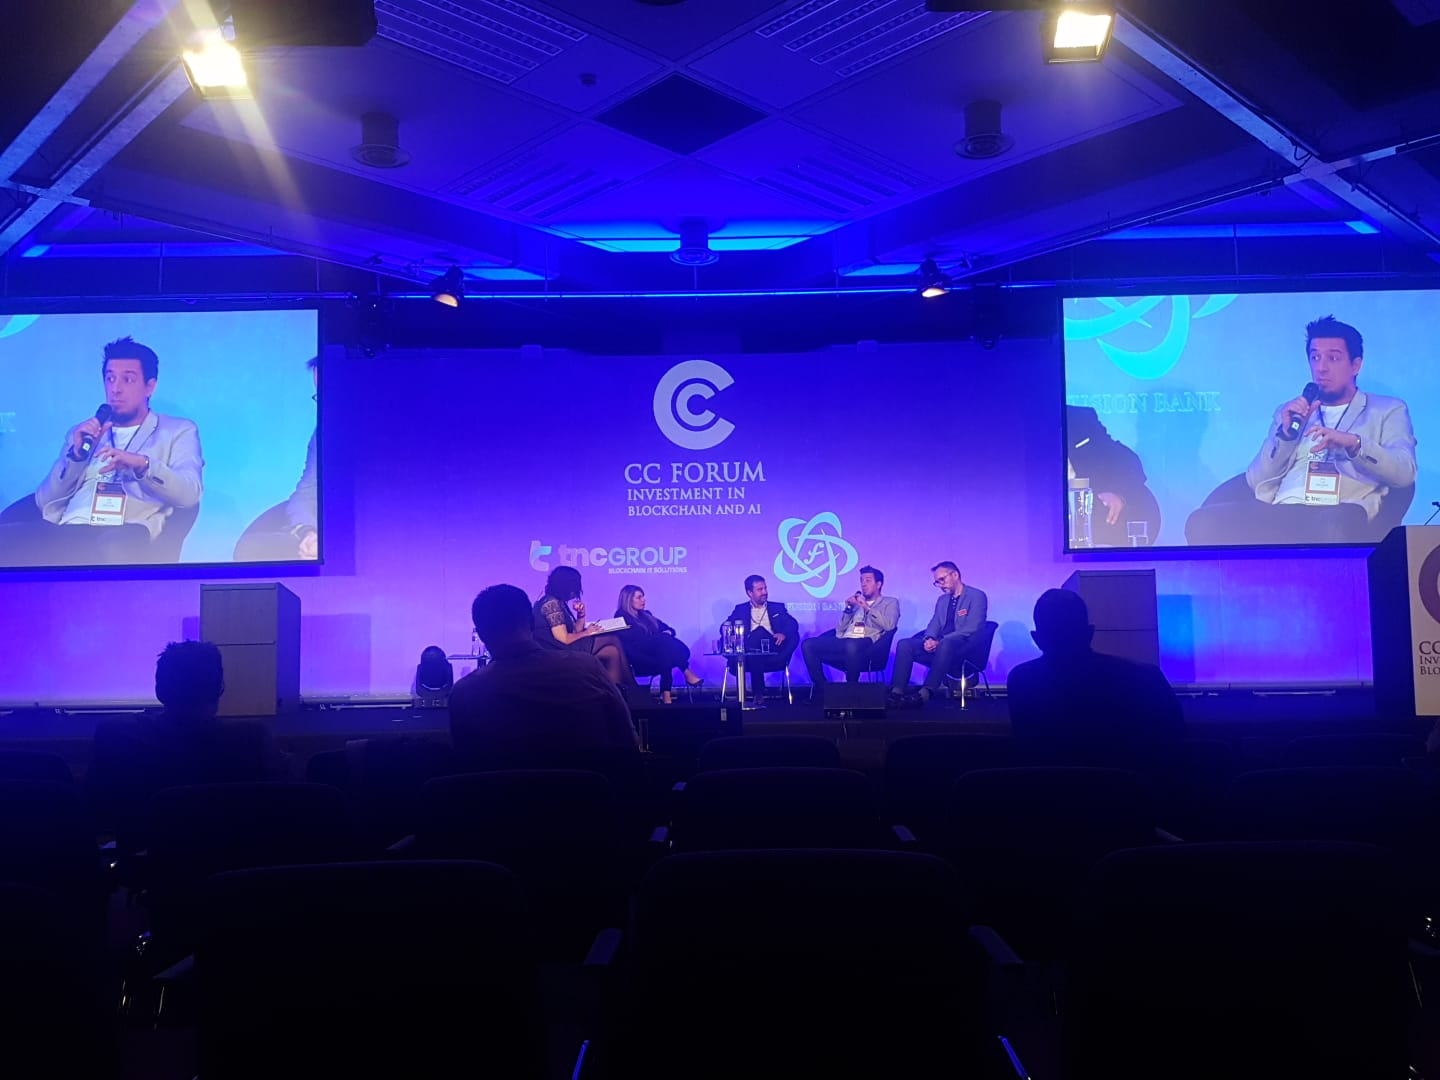 Panel discussion with CC Forum London